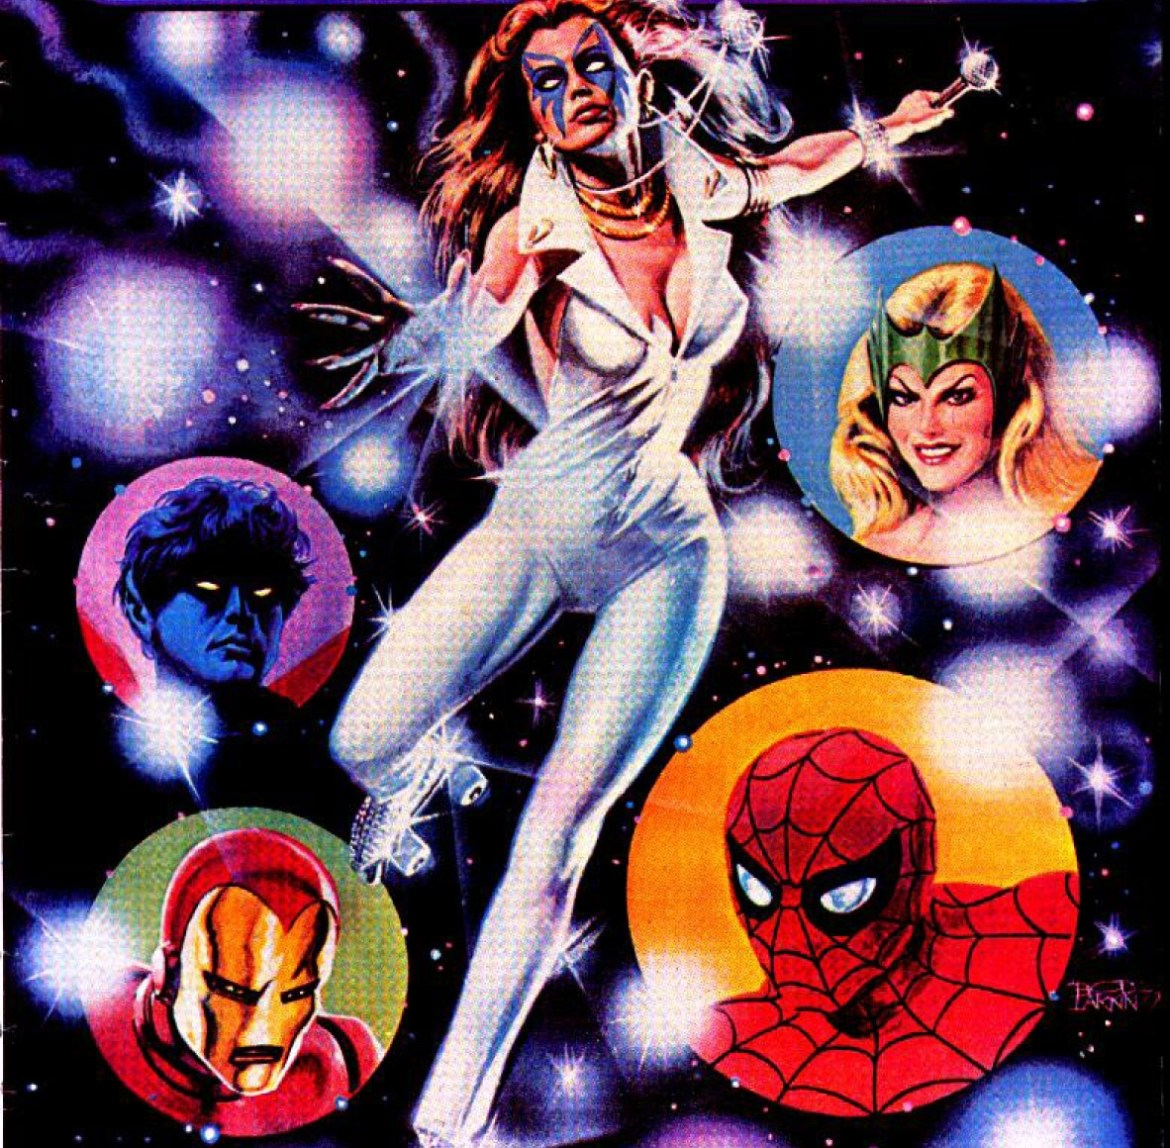 Dazzler #1 – Reviews Of Old Comics